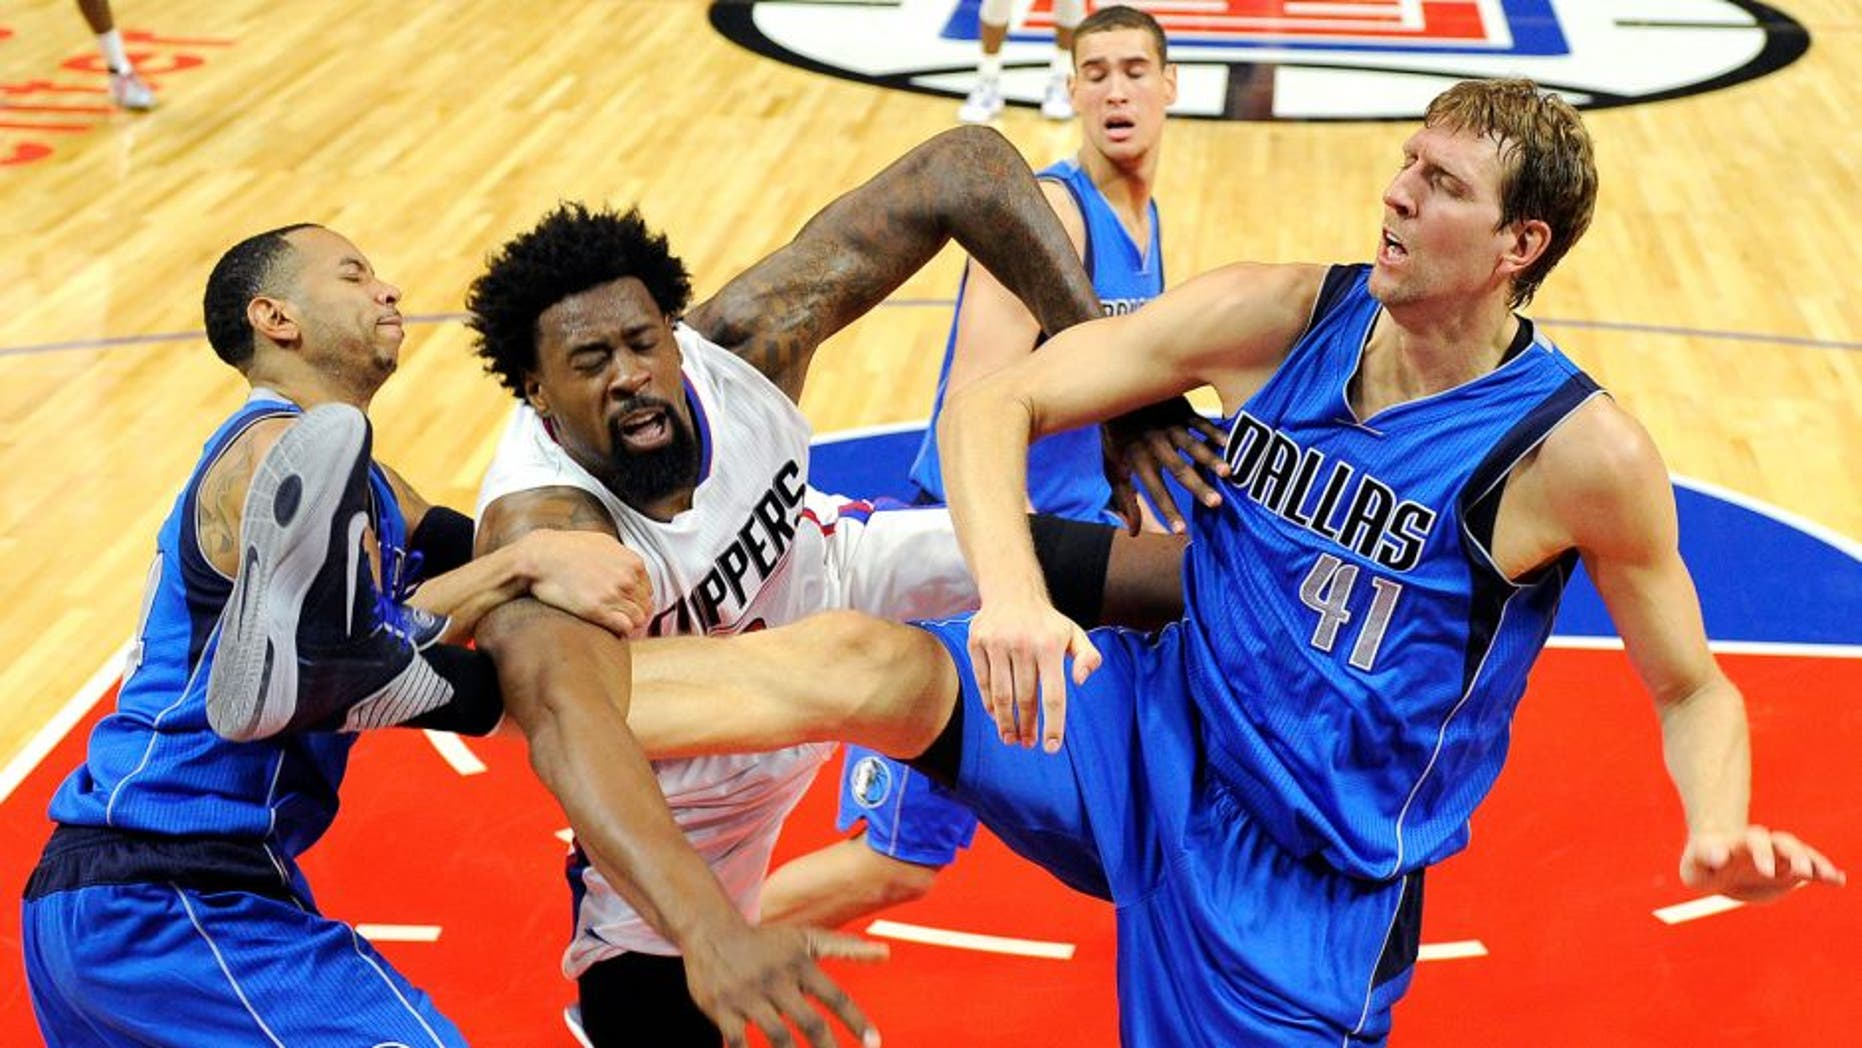 LOS ANGELES CA - OCTOBER 29: DeAndre Jordan #6 of the Los Angeles Clippers is fouled by Dirk Nowitzki #41 and Devin Harris of the Dallas Mavericks during the second quarter of the basketball game Staples Center October 29, 2015, in Los Angeles California. (Photo by Kevork Djansezian/Getty Images)